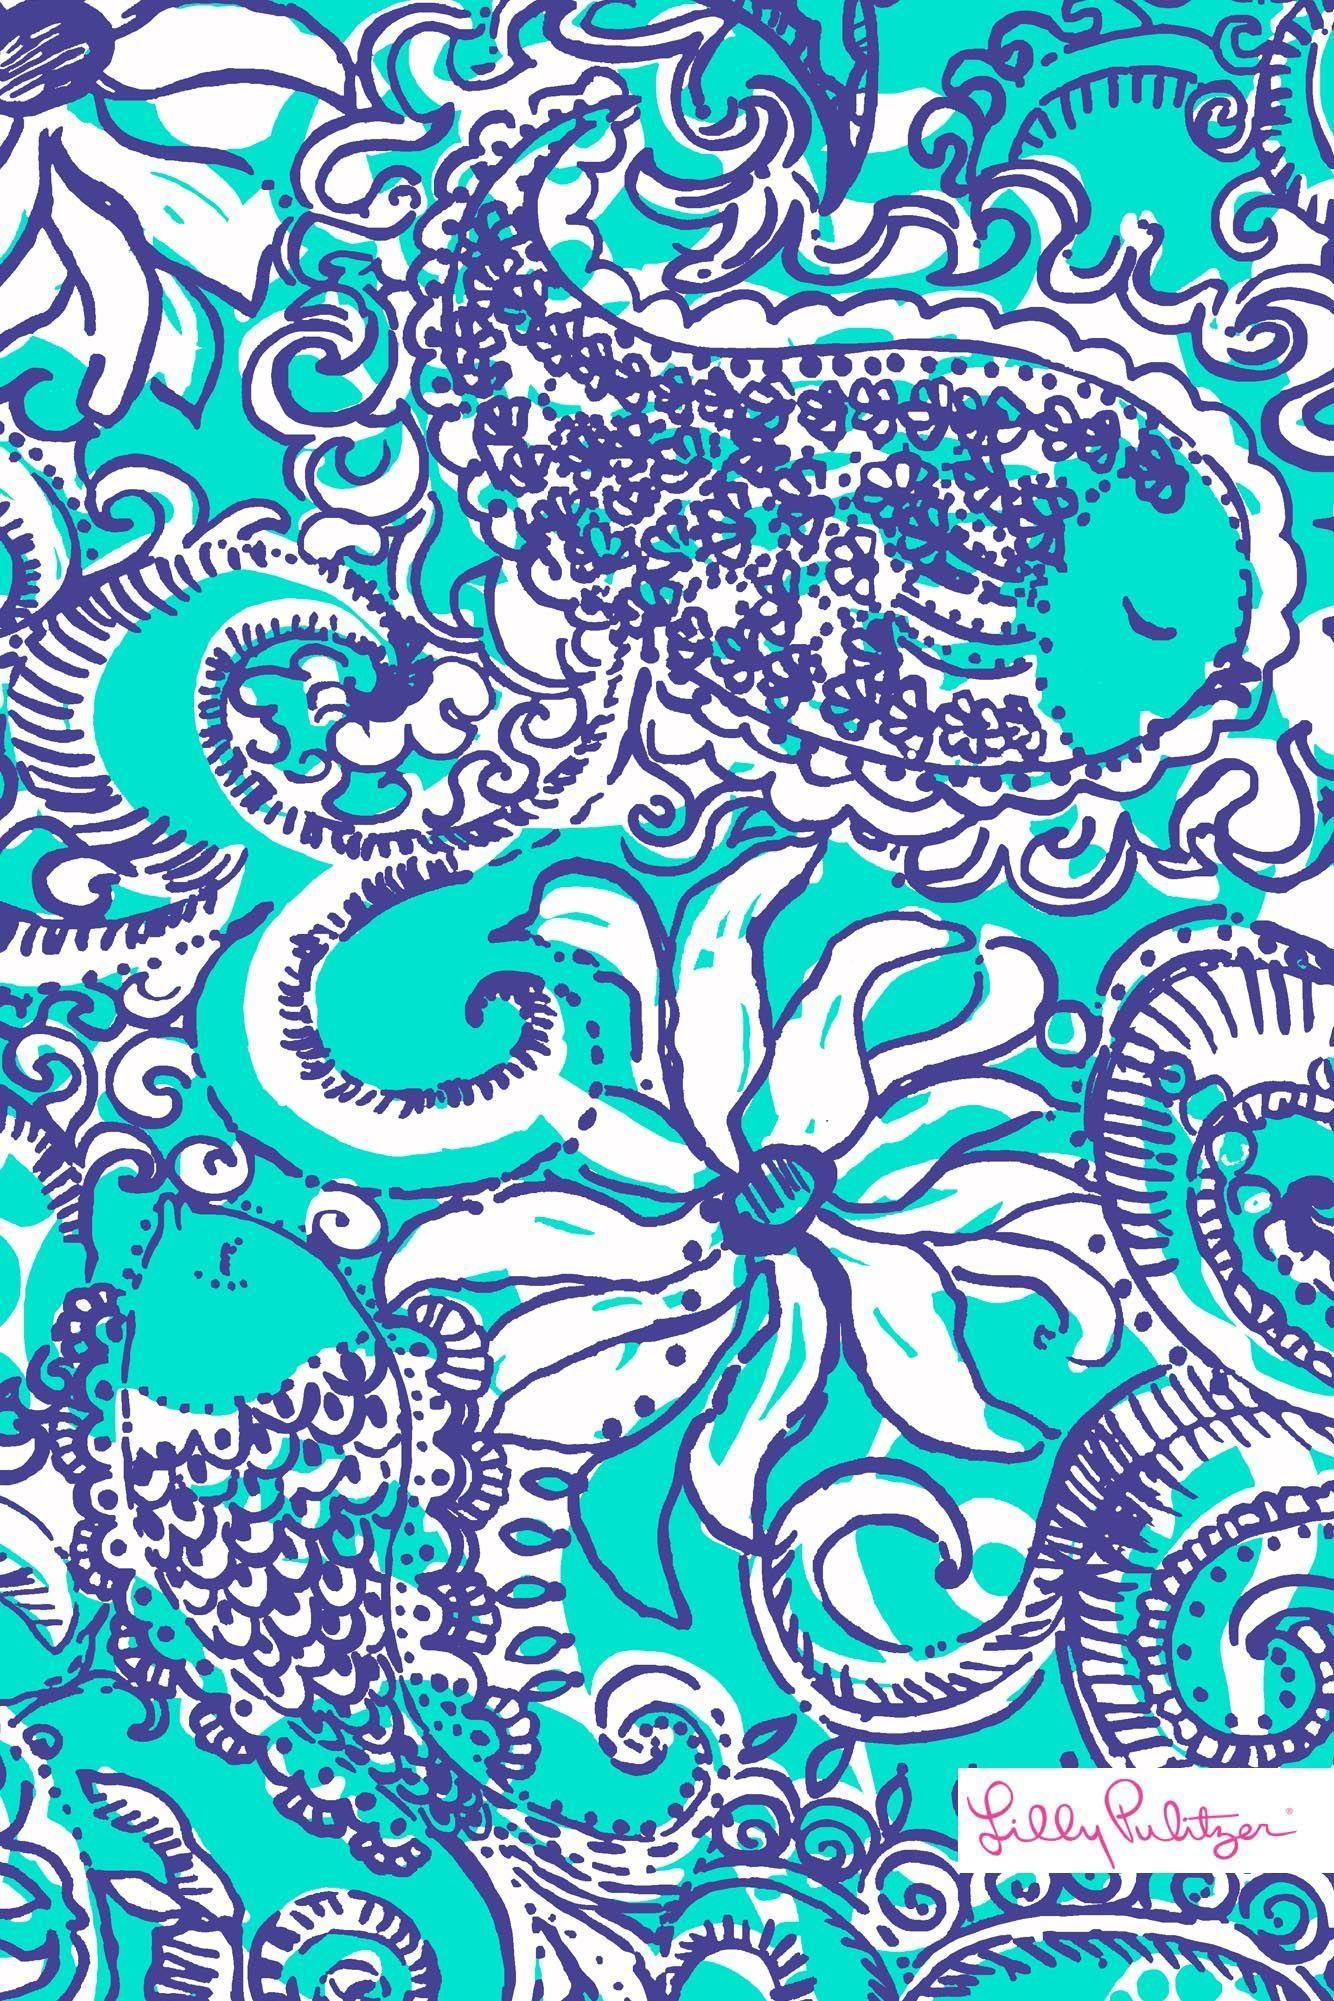 Lilly Pulitzer Montauk iPhone wallpaper   Patterns We Love! Lilly .